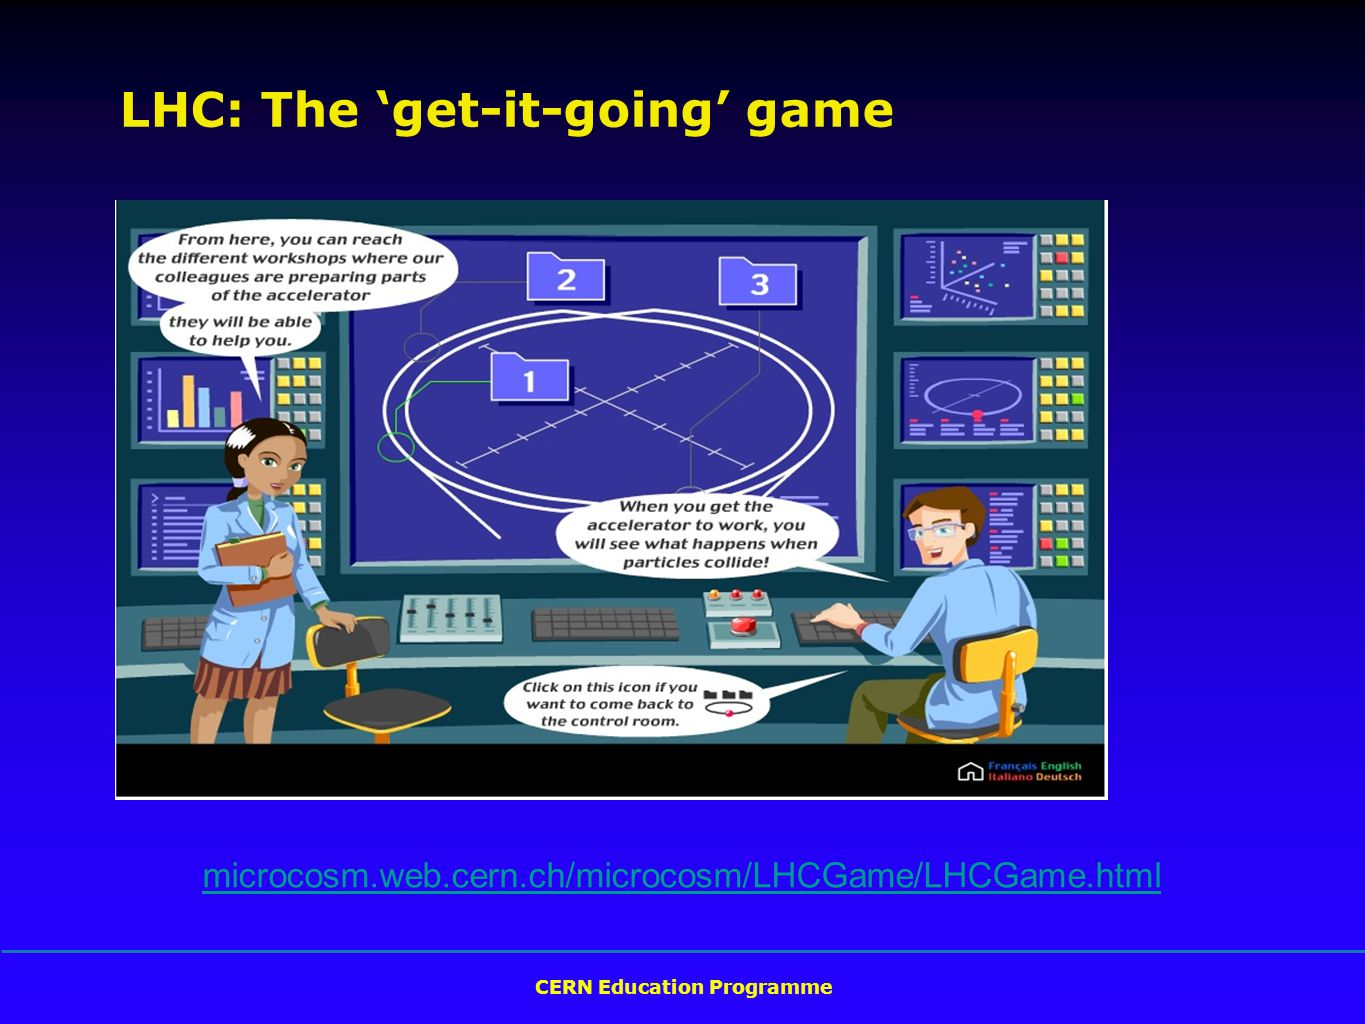 CERN Education Programme microcosm.web.cern.ch/microcosm/LHCGame/LHCGame.html LHC: The 'get-it-going' game